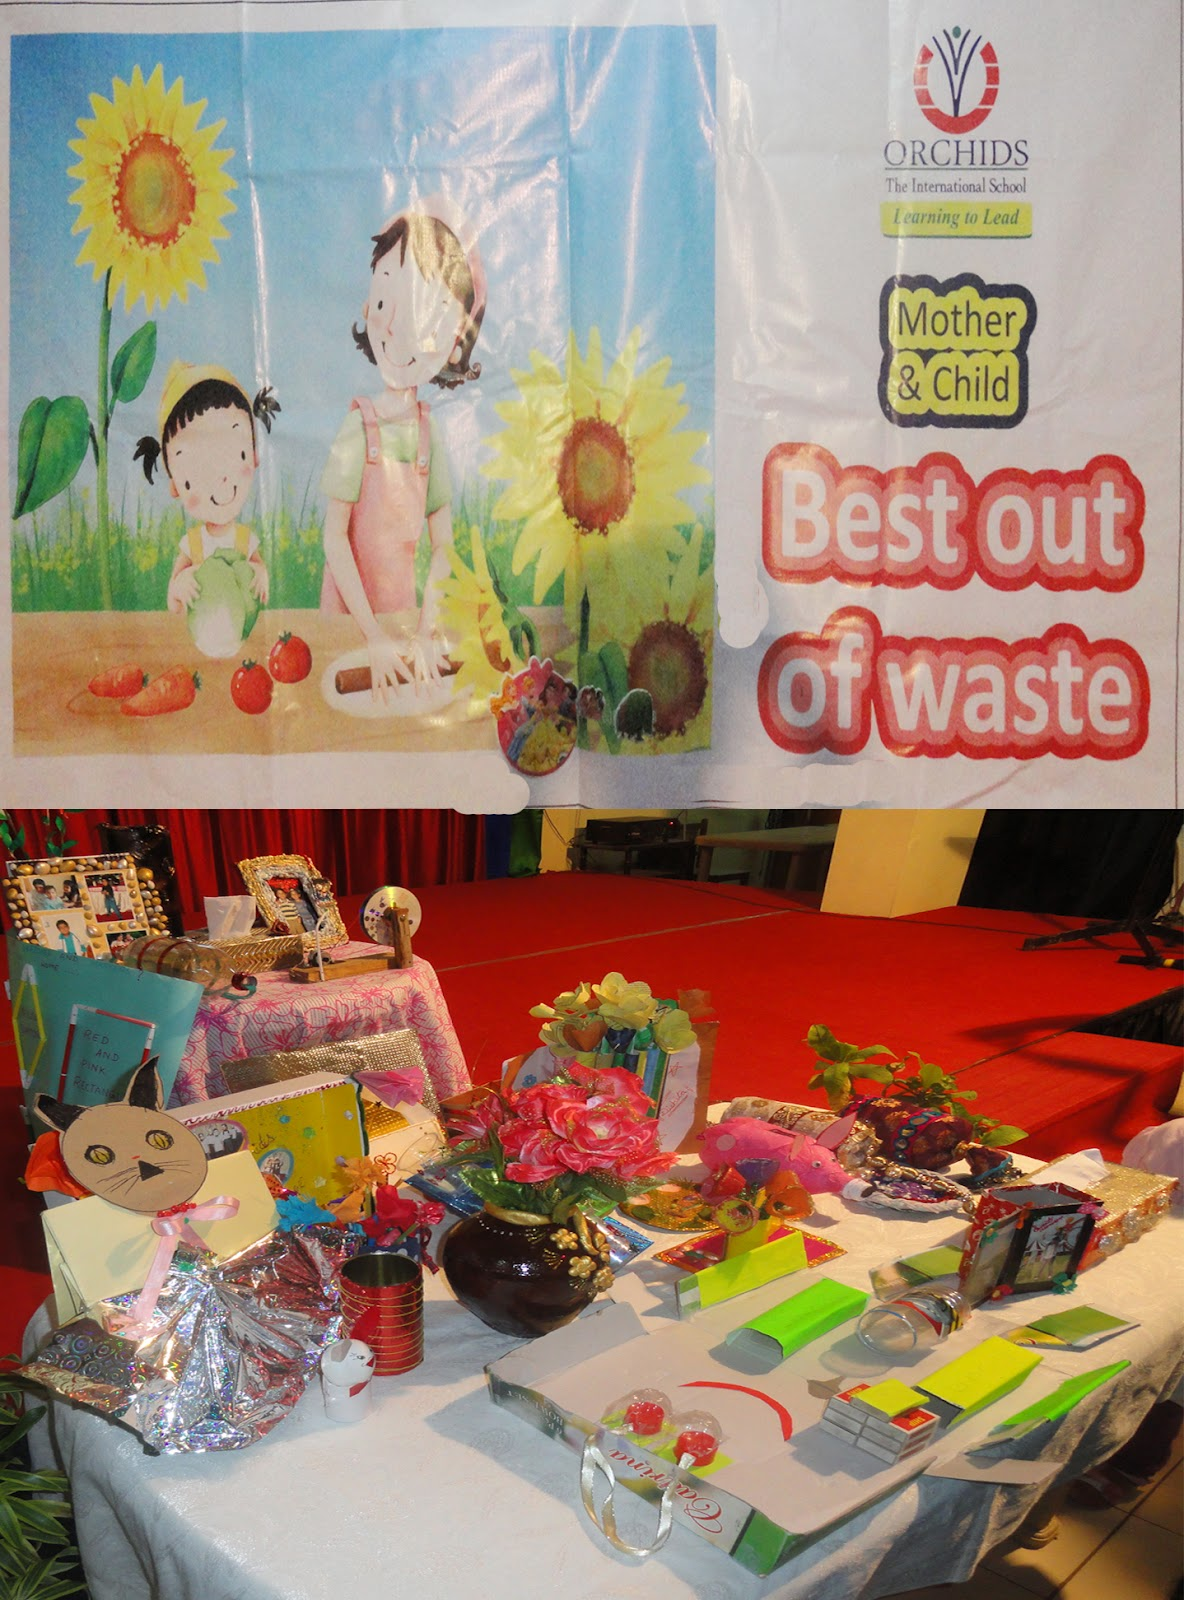 Best out of waste videos best out of waste visage the for What is best out of waste